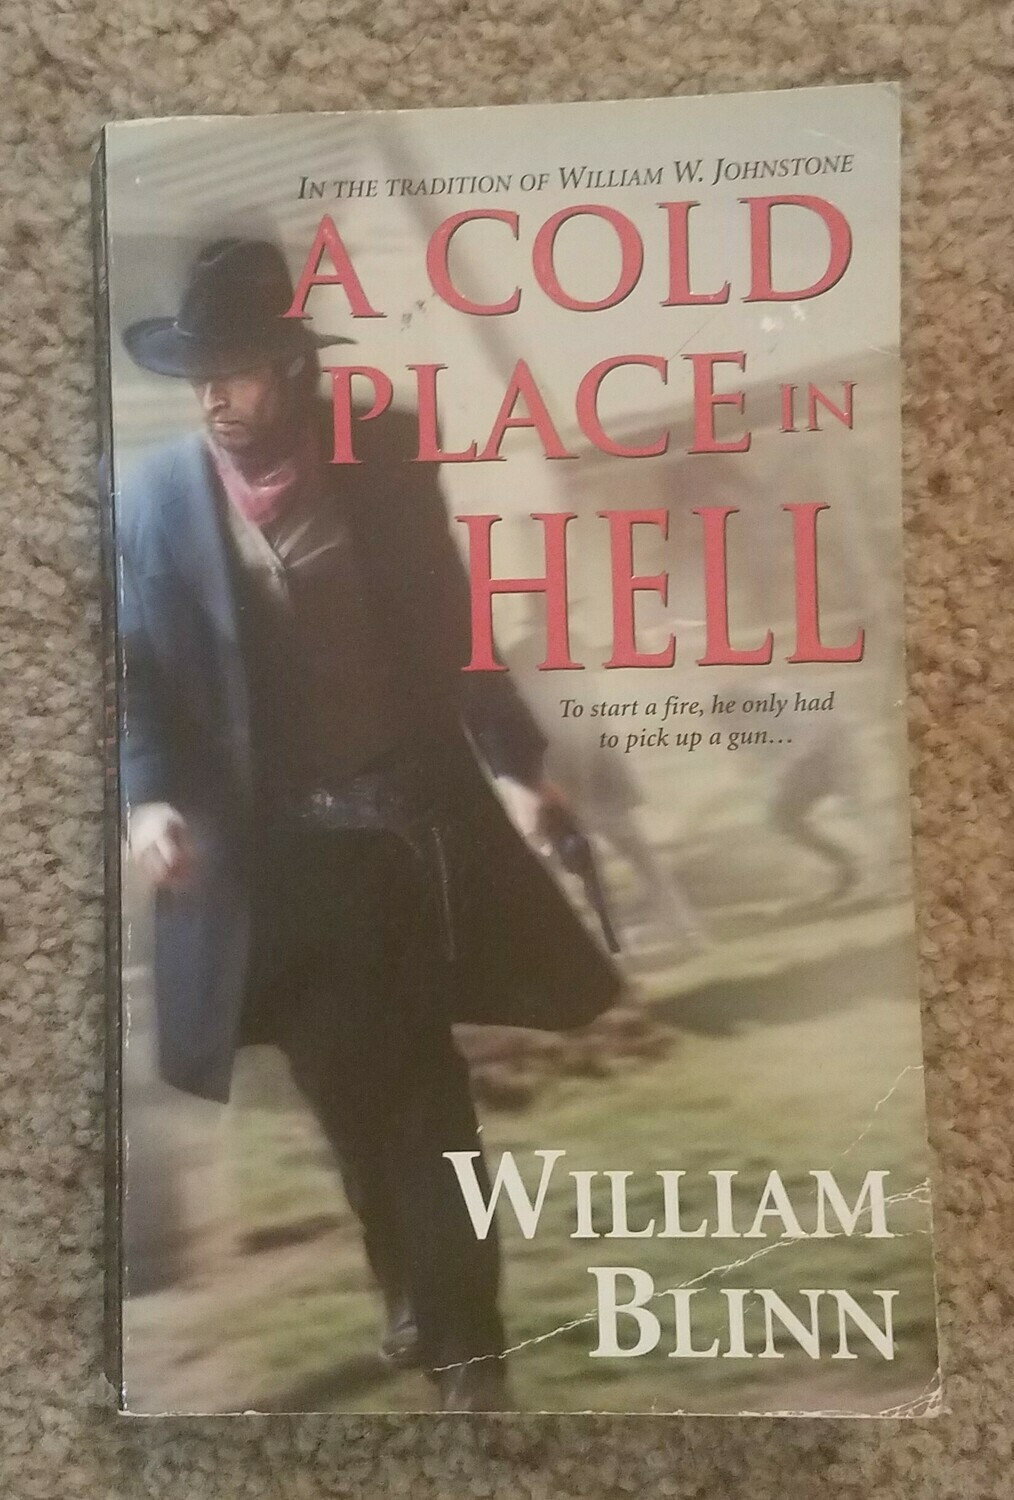 A Cold Place in Hell by William Blinn